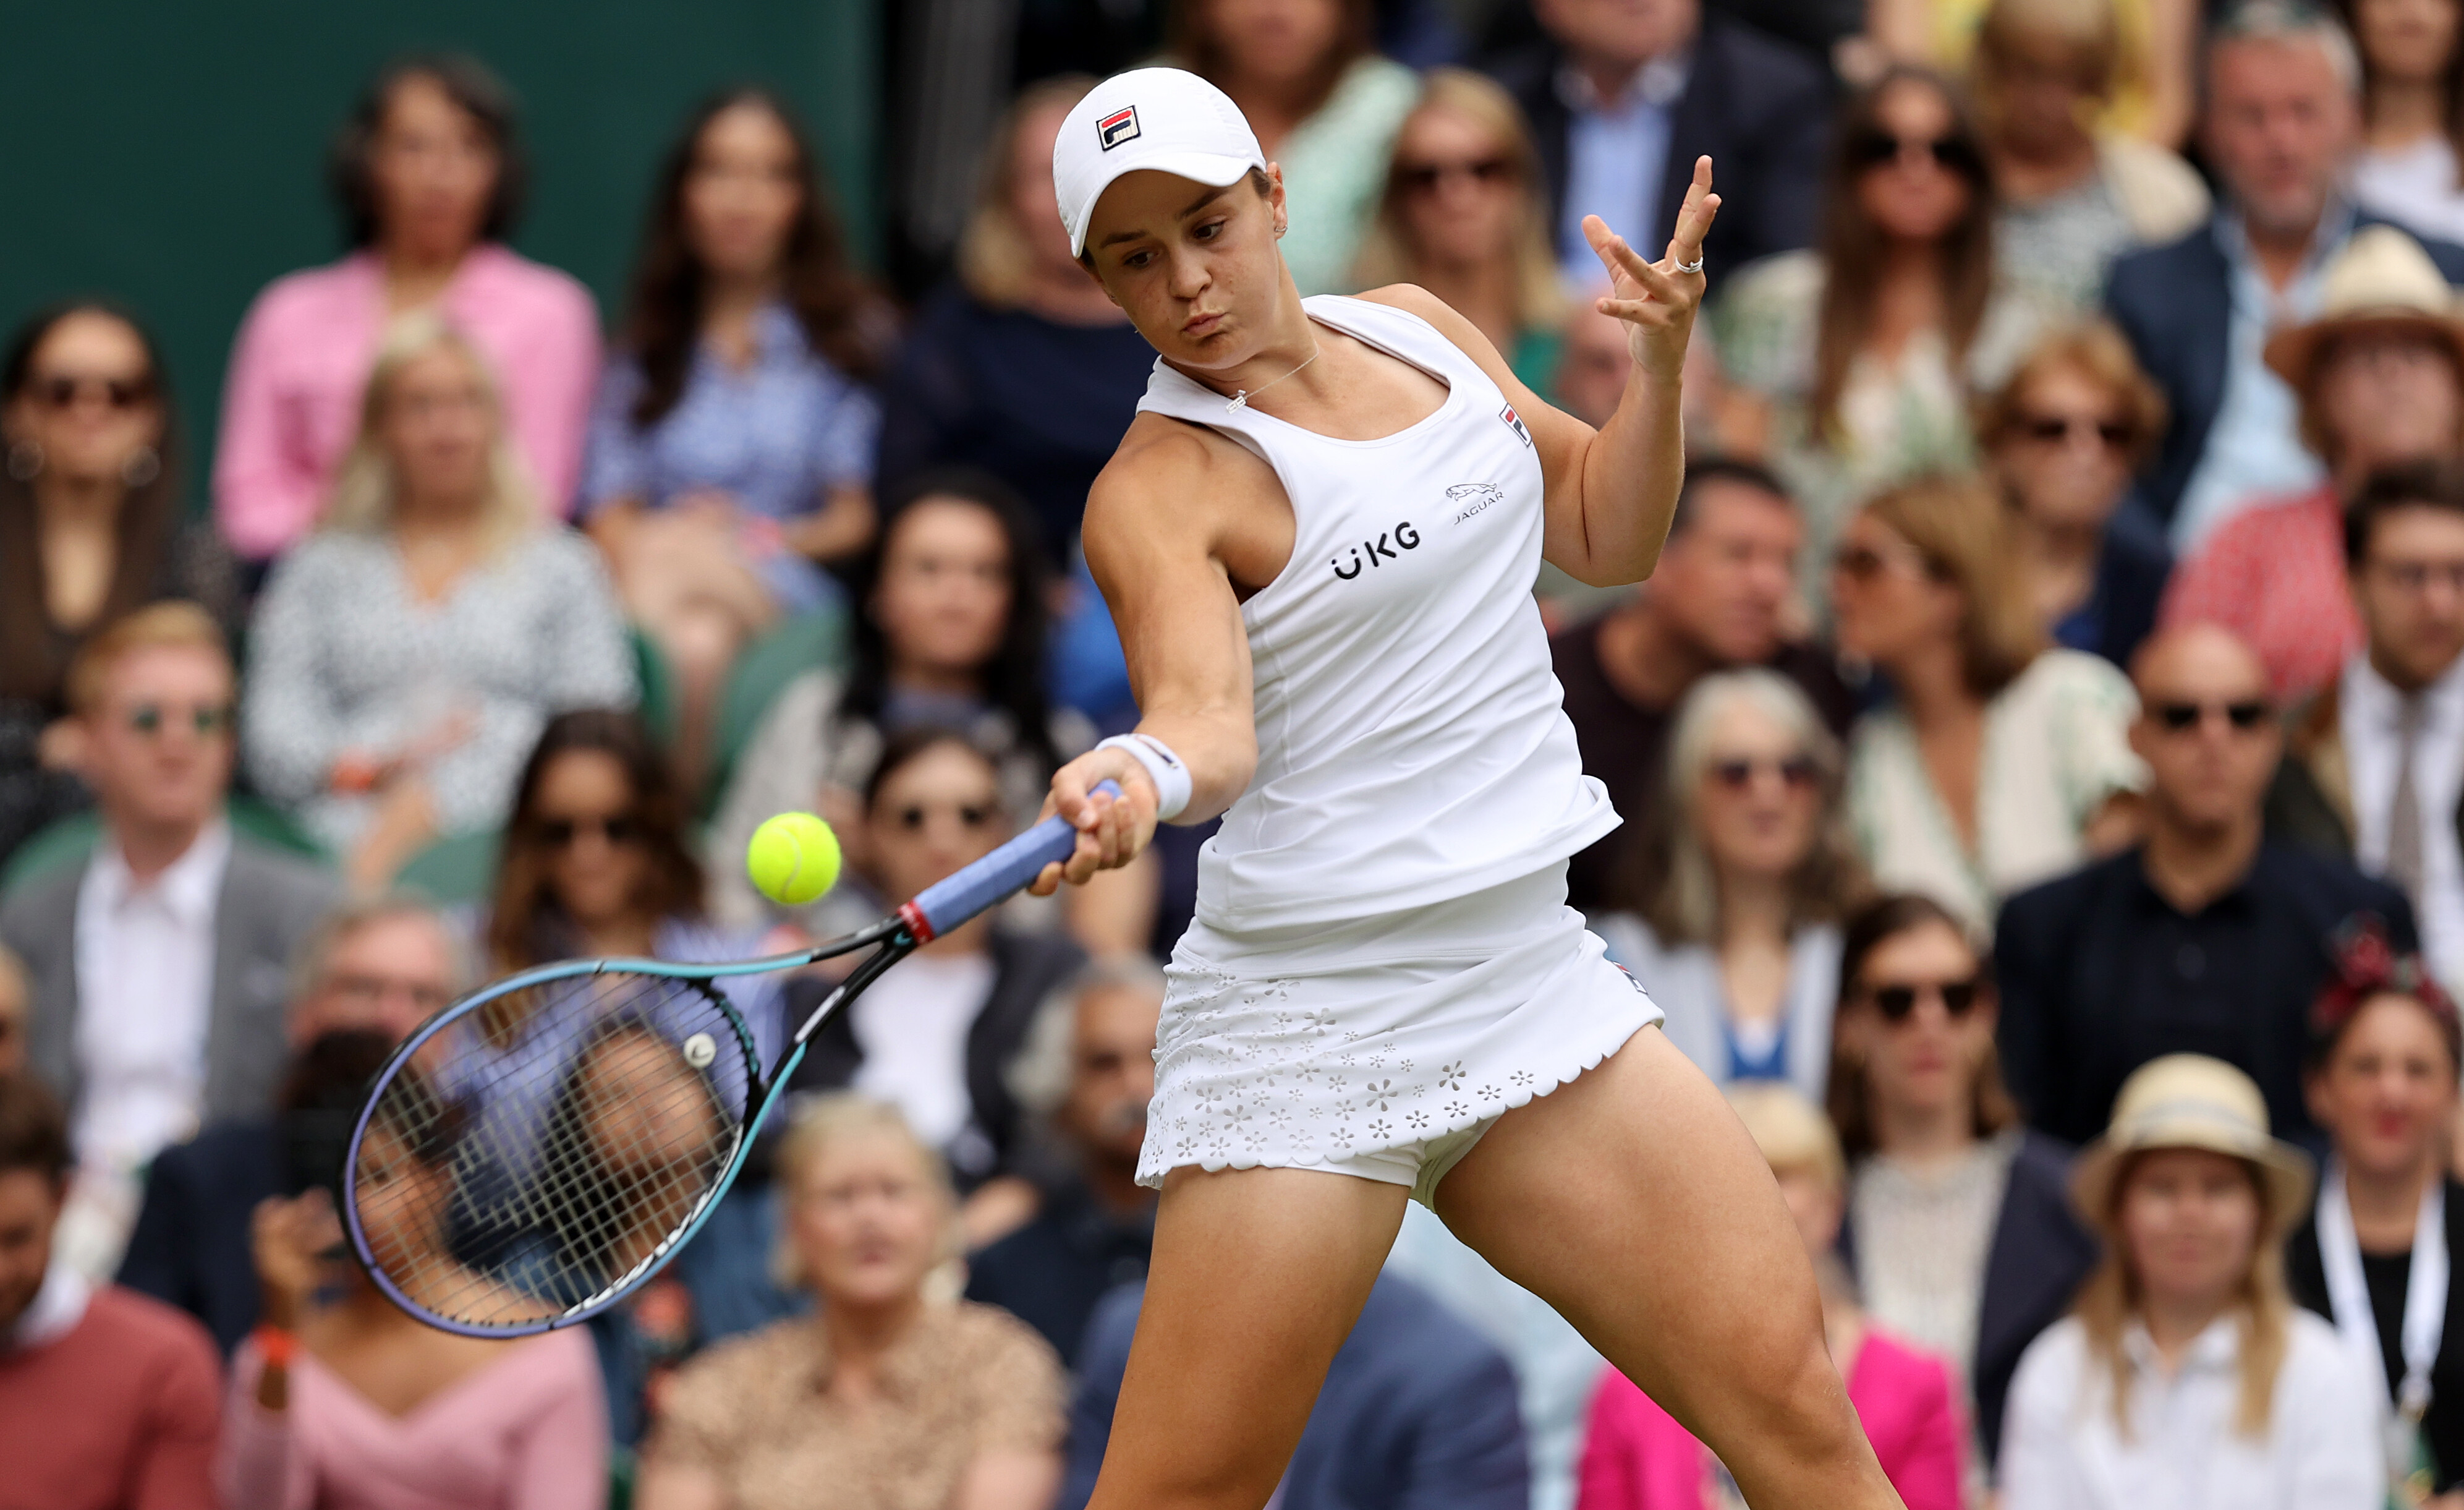 Ashleigh Barty becomes first Australian woman to win Wimbledon singles title in 41 years